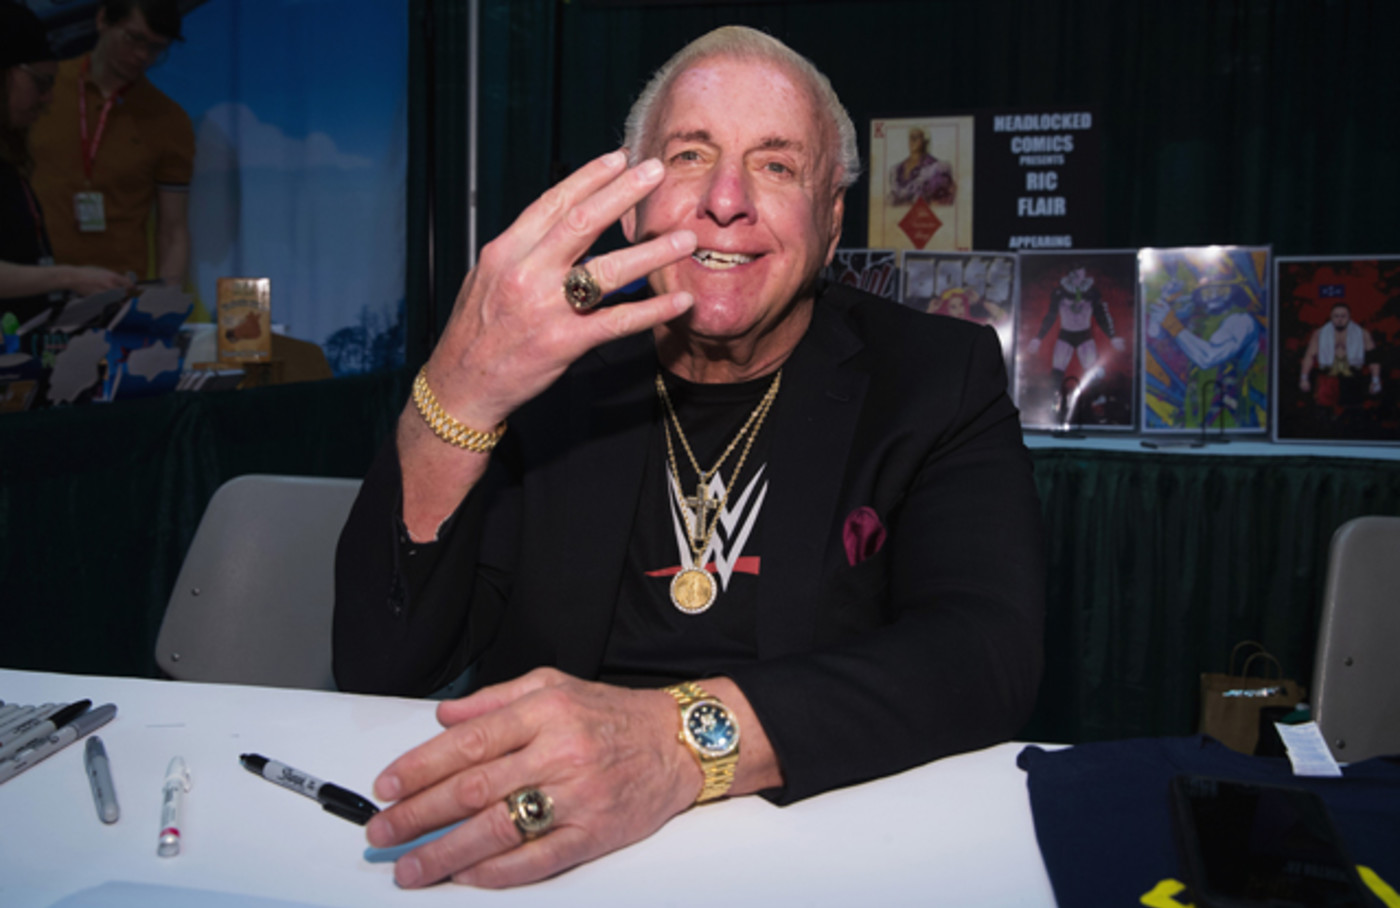 Ric Flair at Emerald City Comic Con